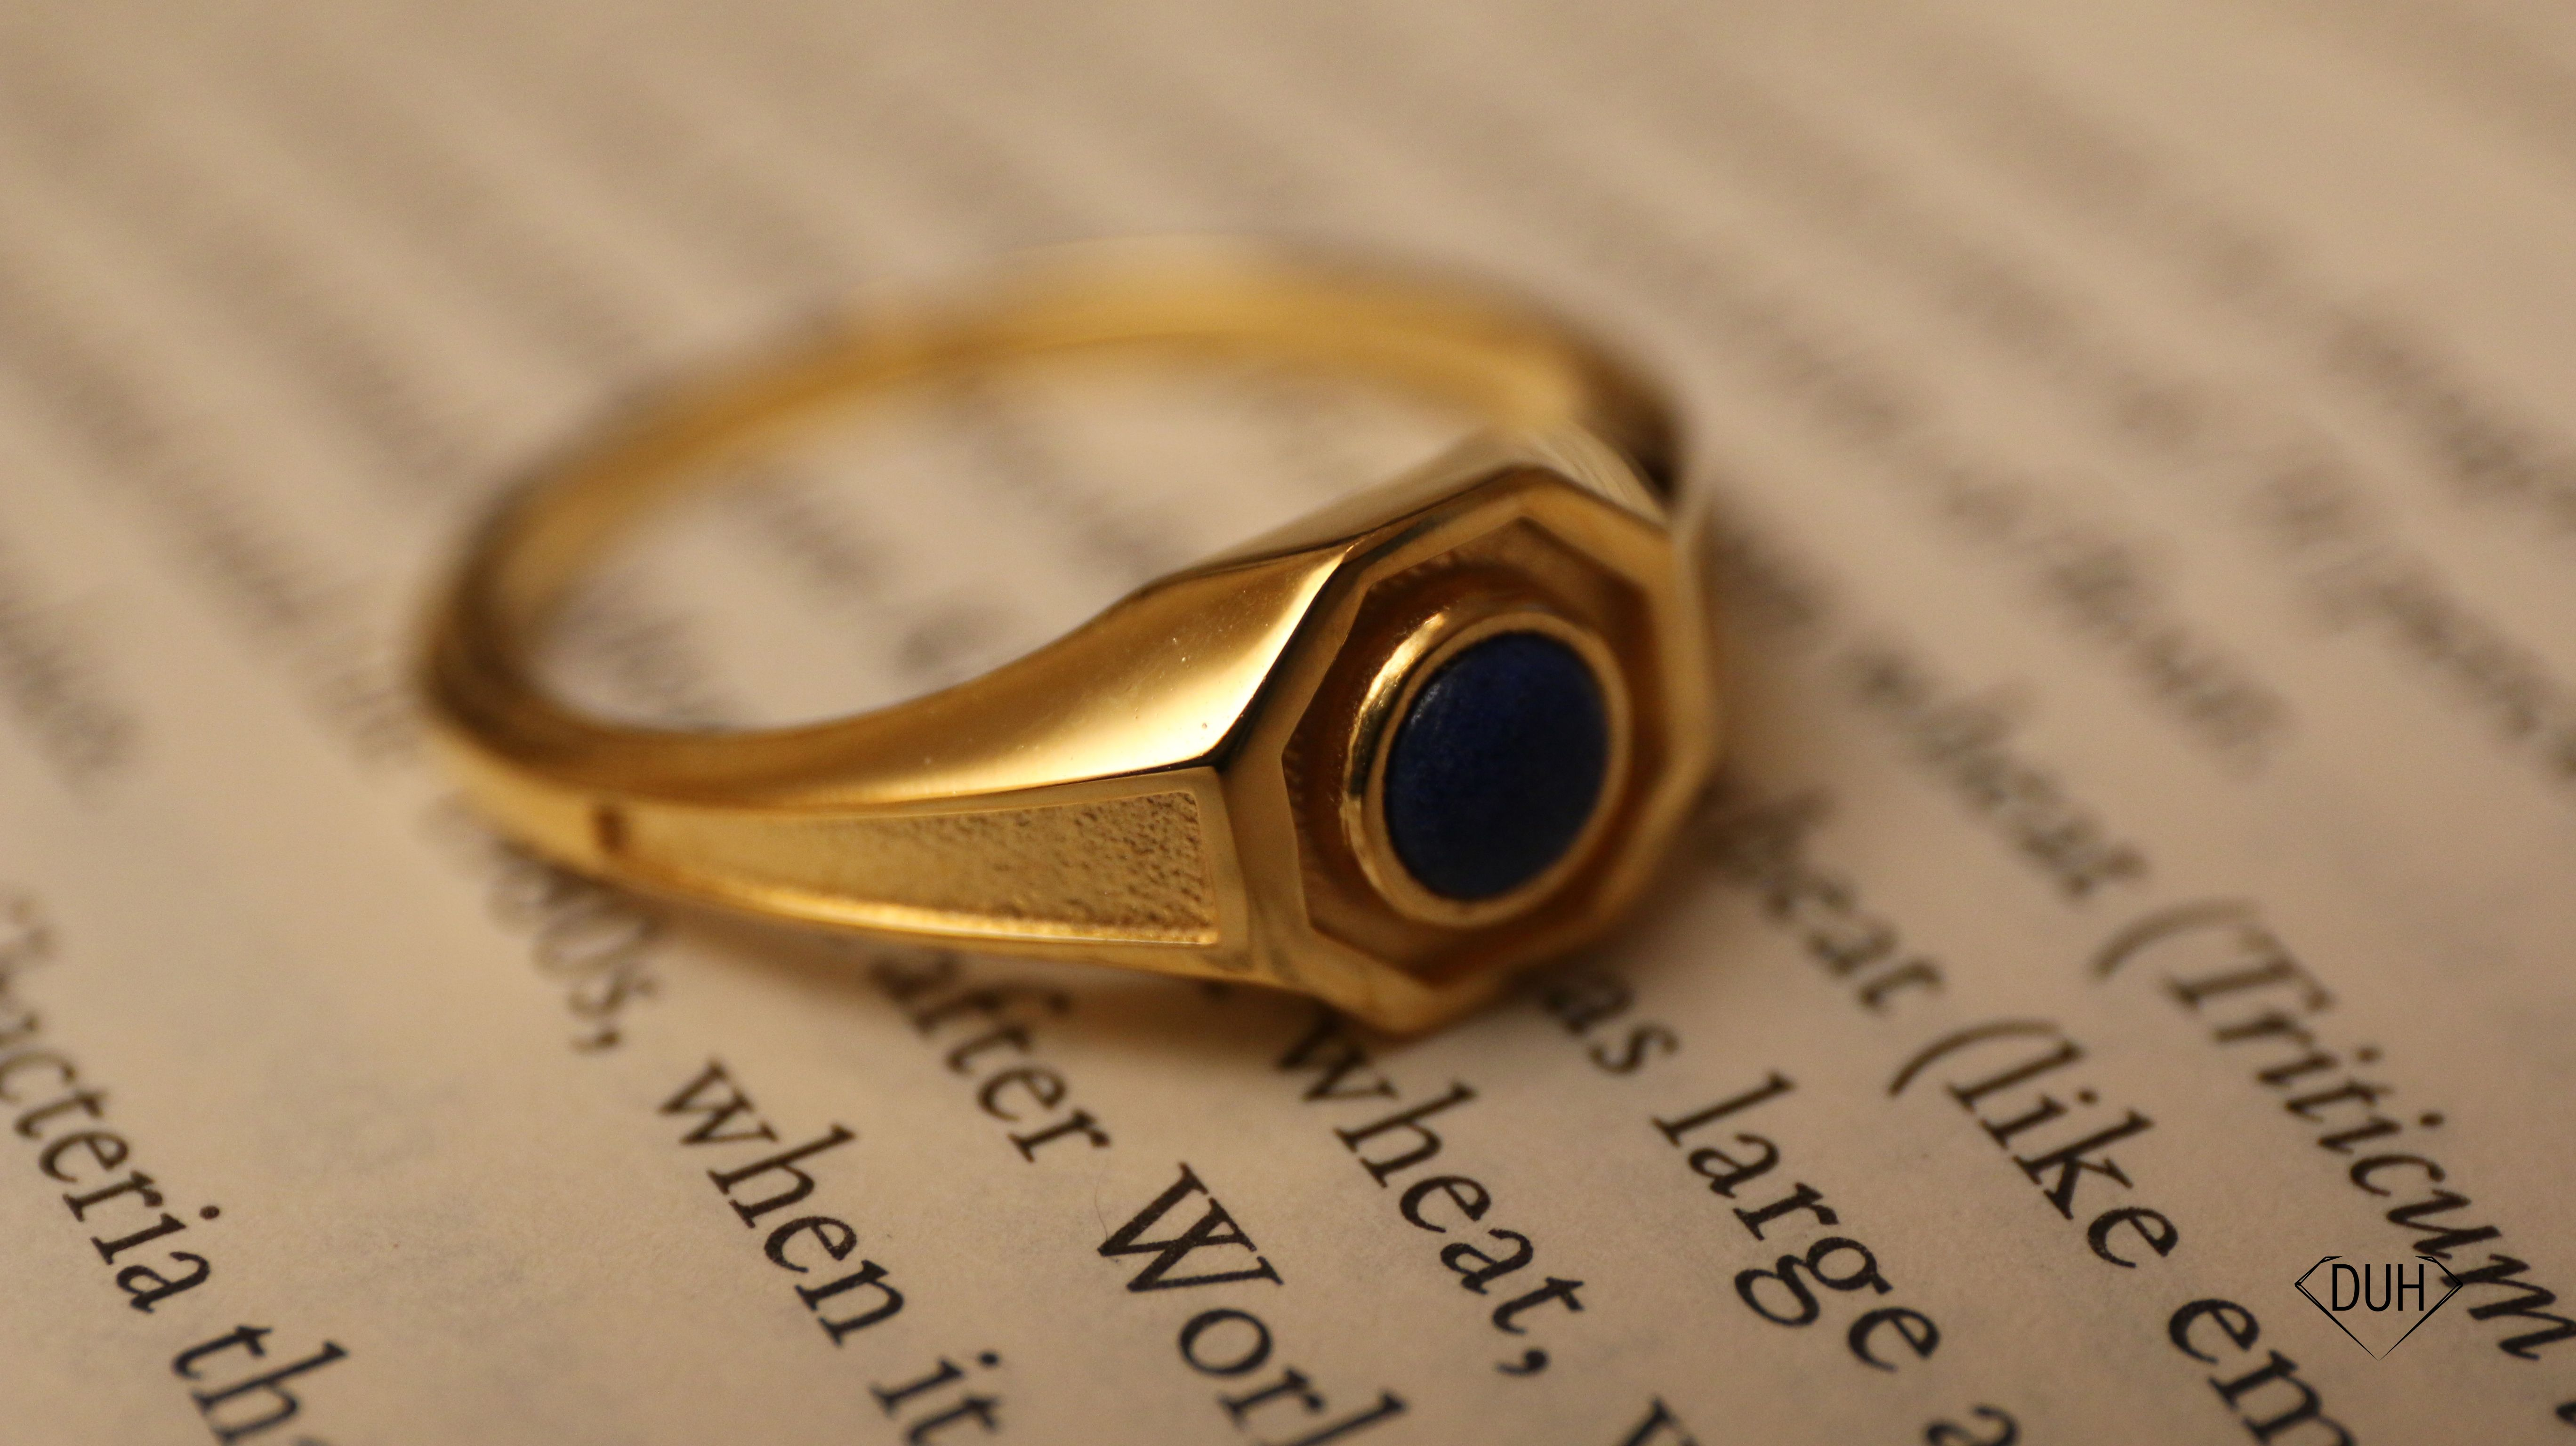 cool lapiz lazuli 18k gold ring for men - great gift idea for him ...